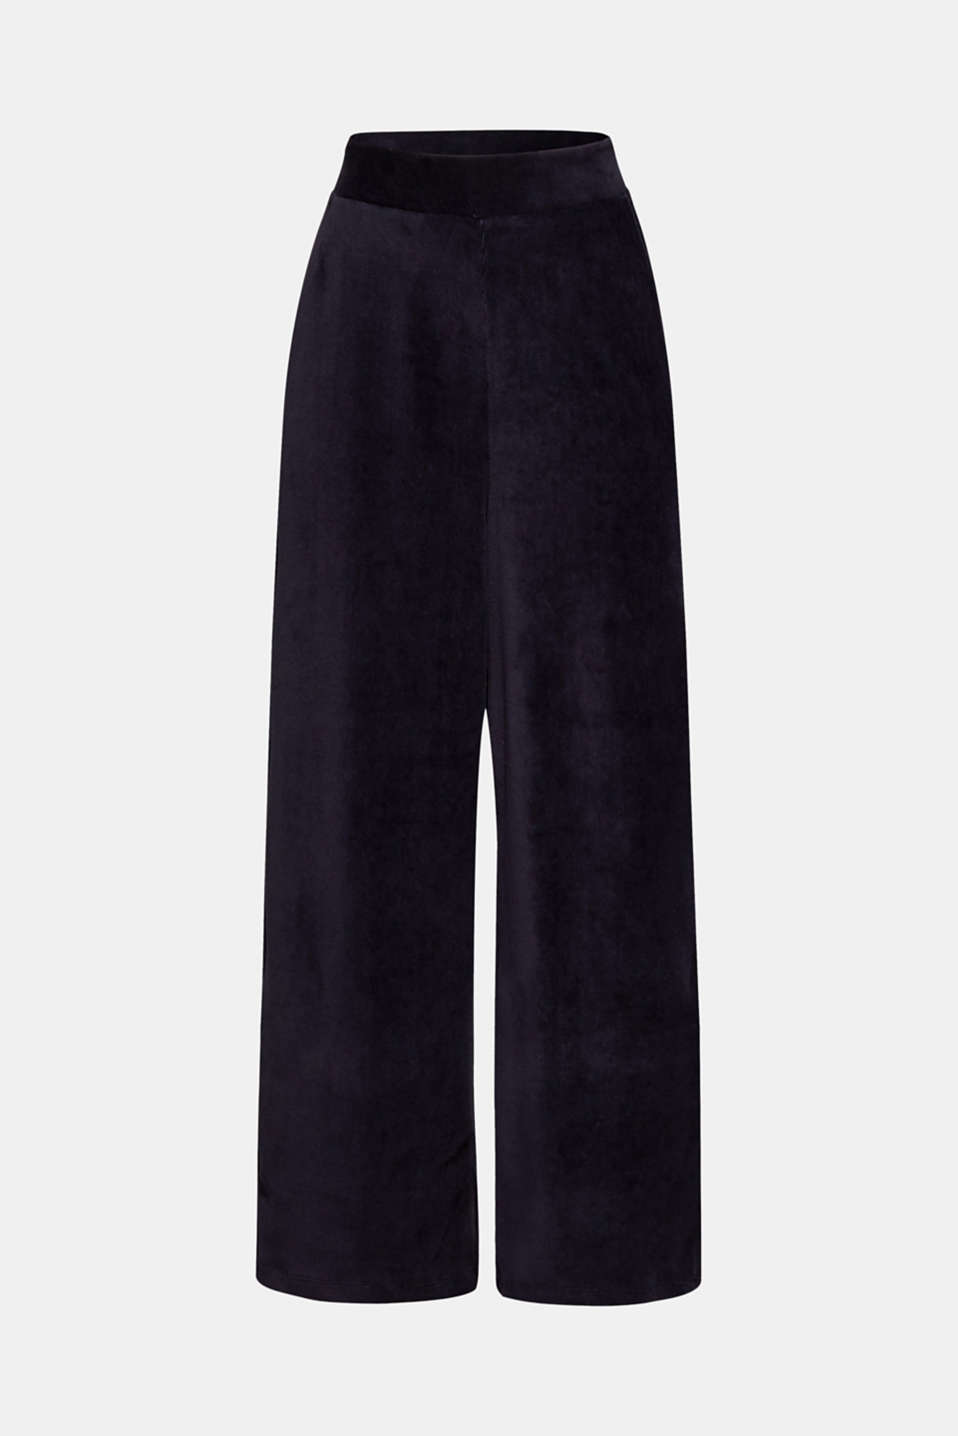 Cord-style stretch jersey trousers, NAVY, detail image number 7